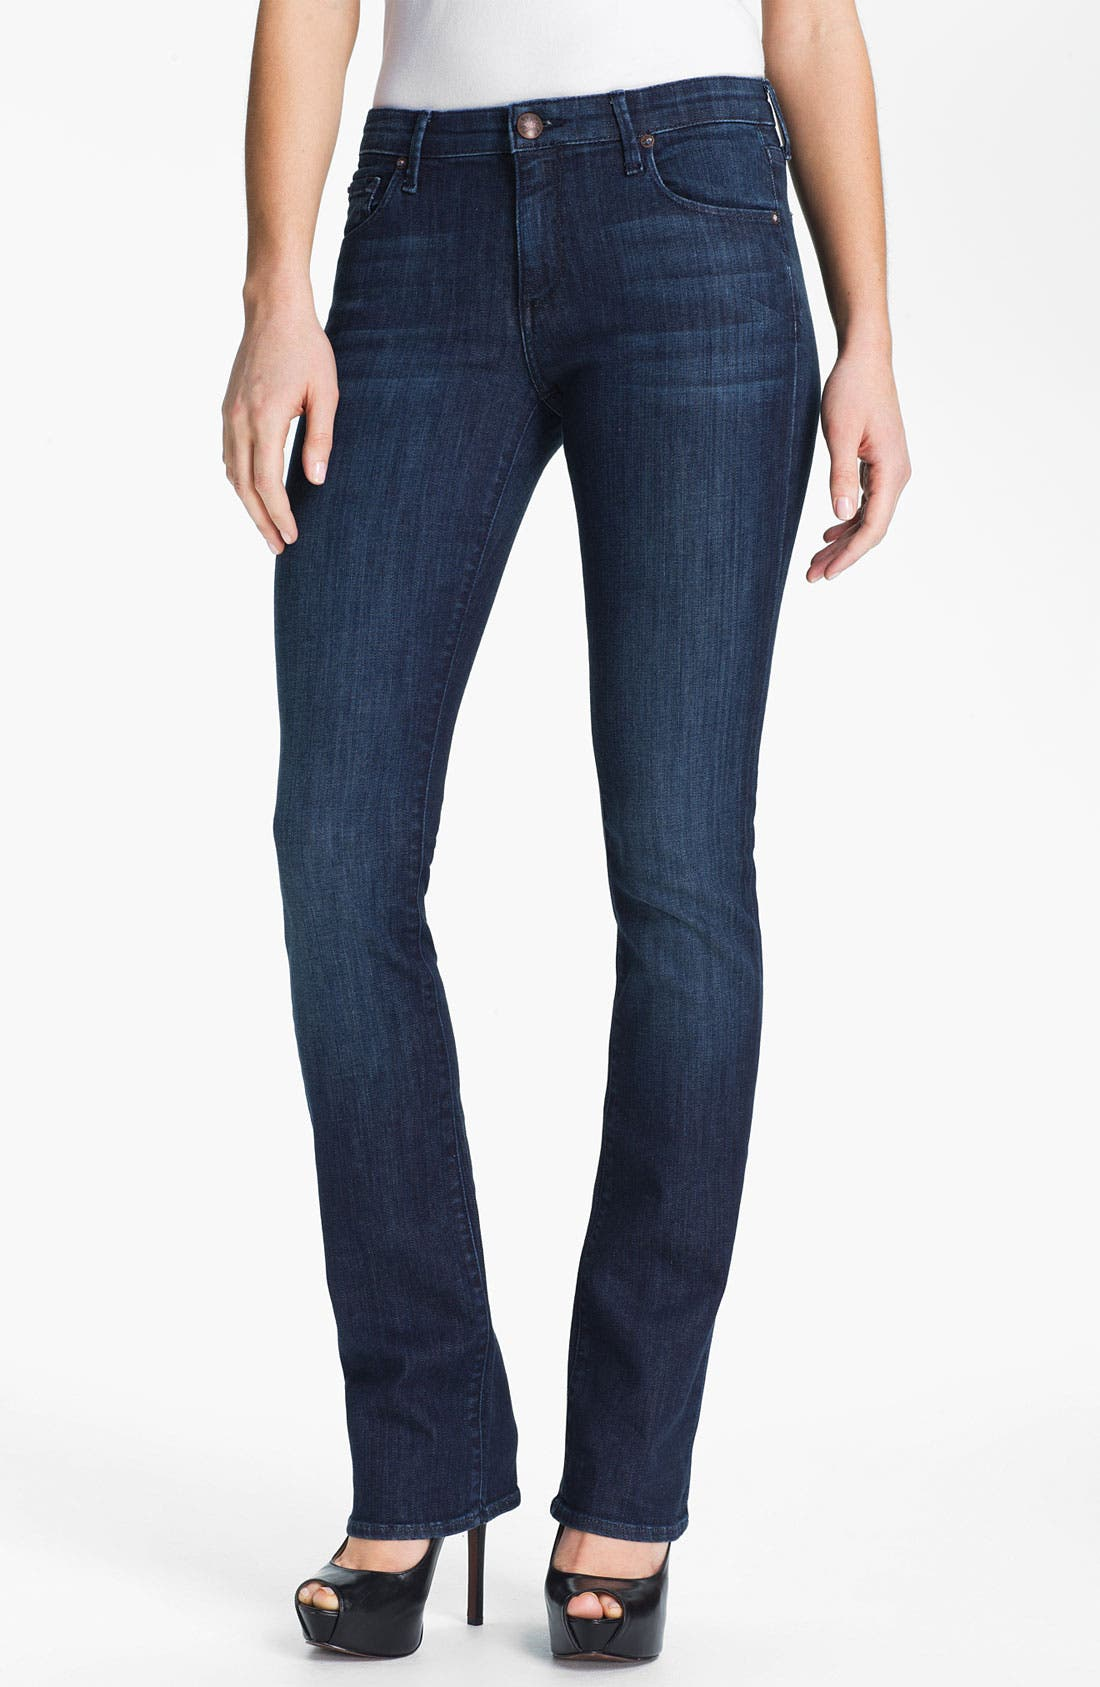 Main Image - Agave 'Linea' Slim Bootcut Jeans (Norte) (Online Exclusive)